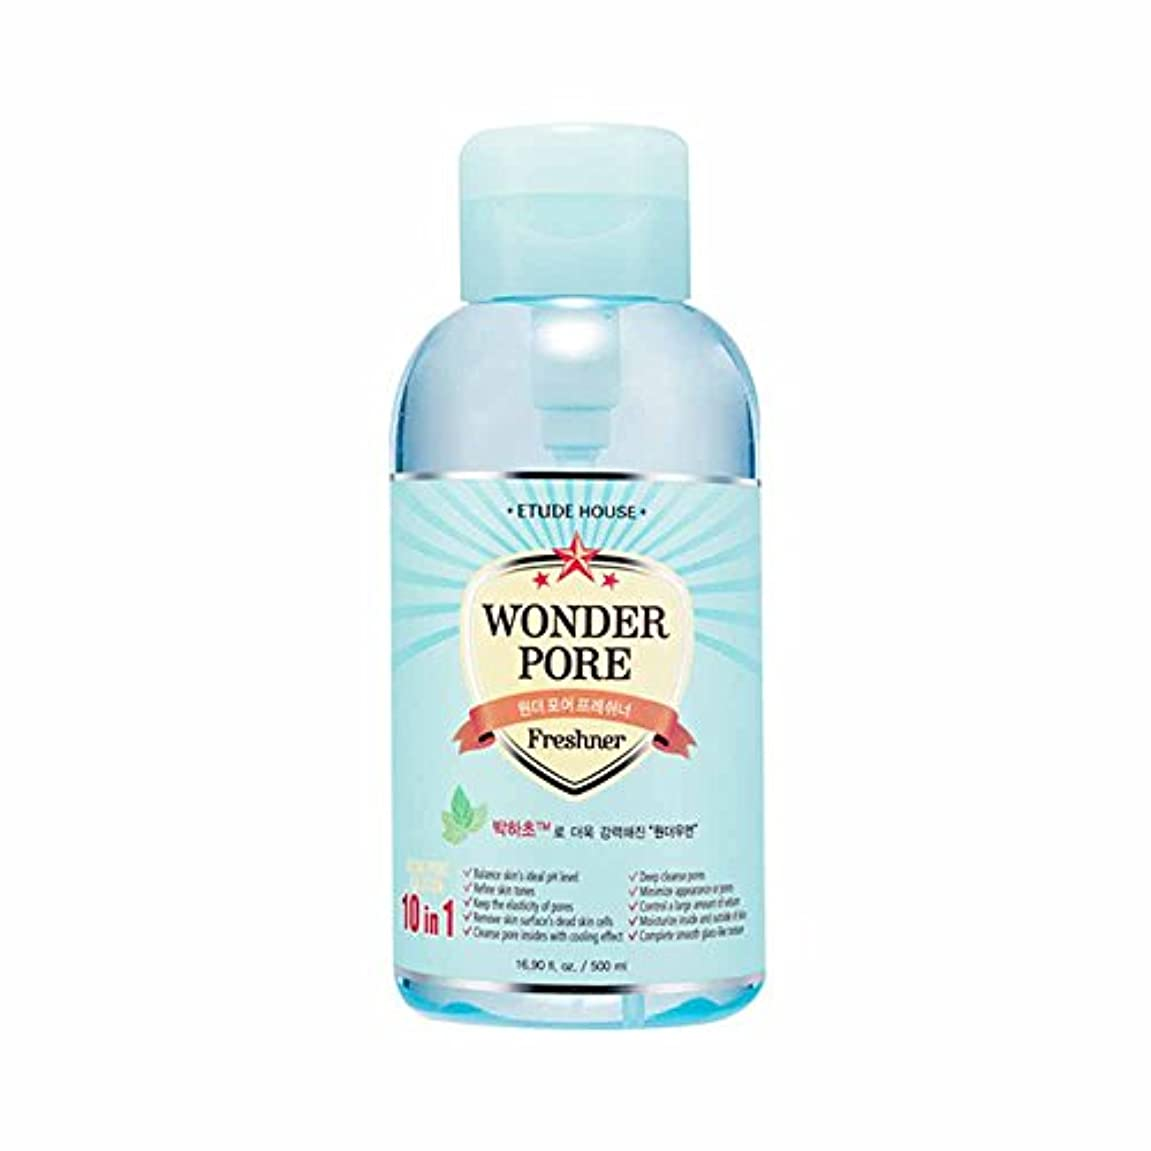 (6 Pack) ETUDE HOUSE Wonder Pore Freshner 10 in 1,500 mL (並行輸入品)